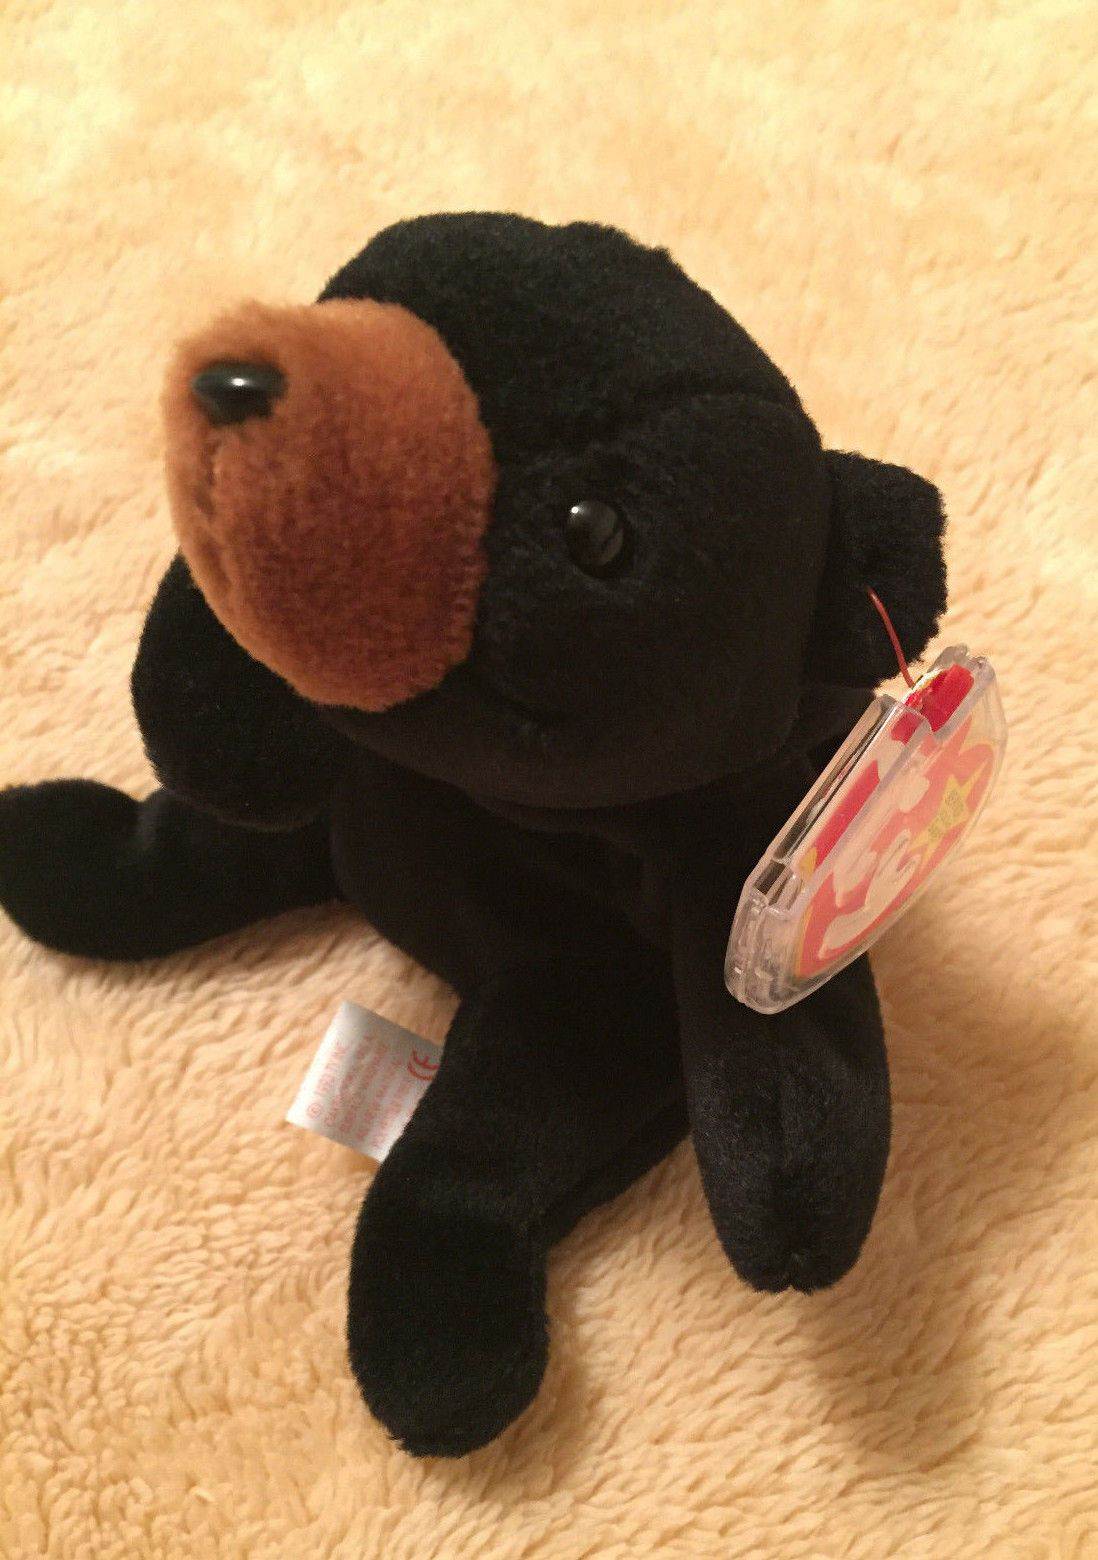 The 20 Expensive Collectible Beanie Babies Will Make You Rich - Most  Valuable Beanie Babies c4336dd7800